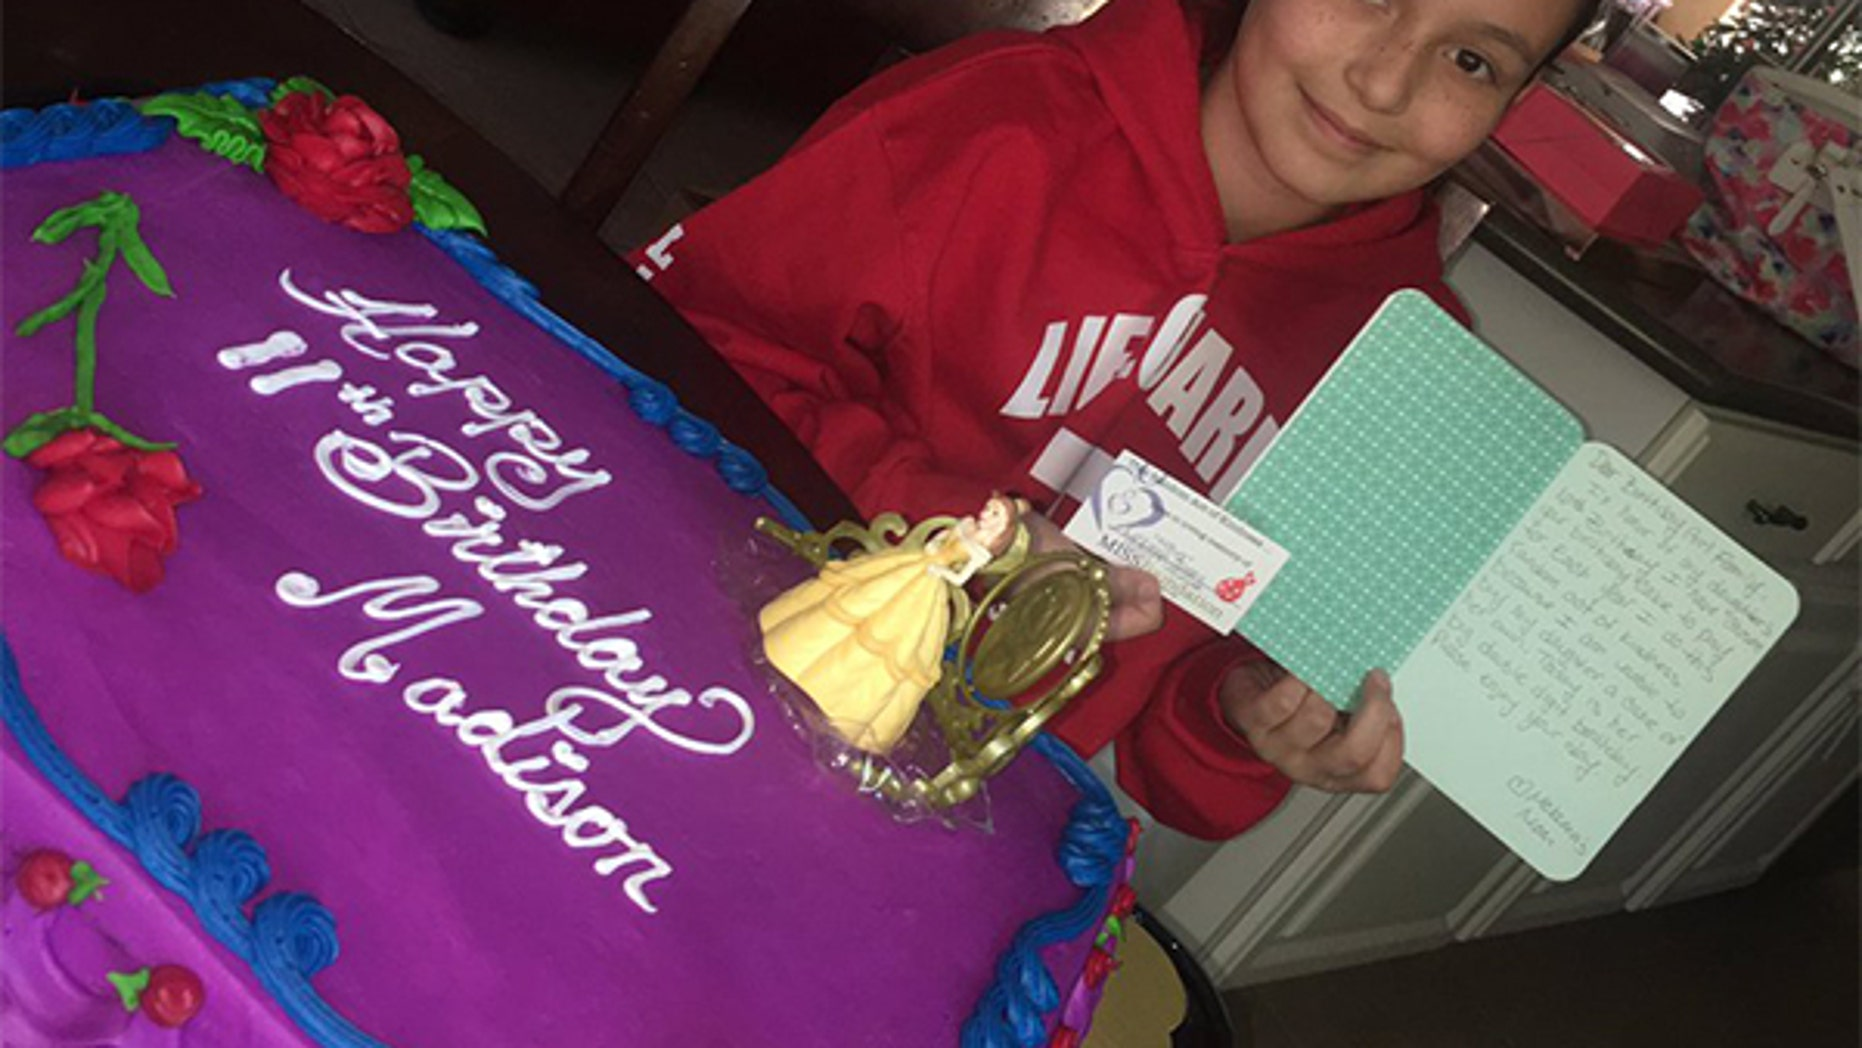 Madison Jagueri and her special birthday cake.